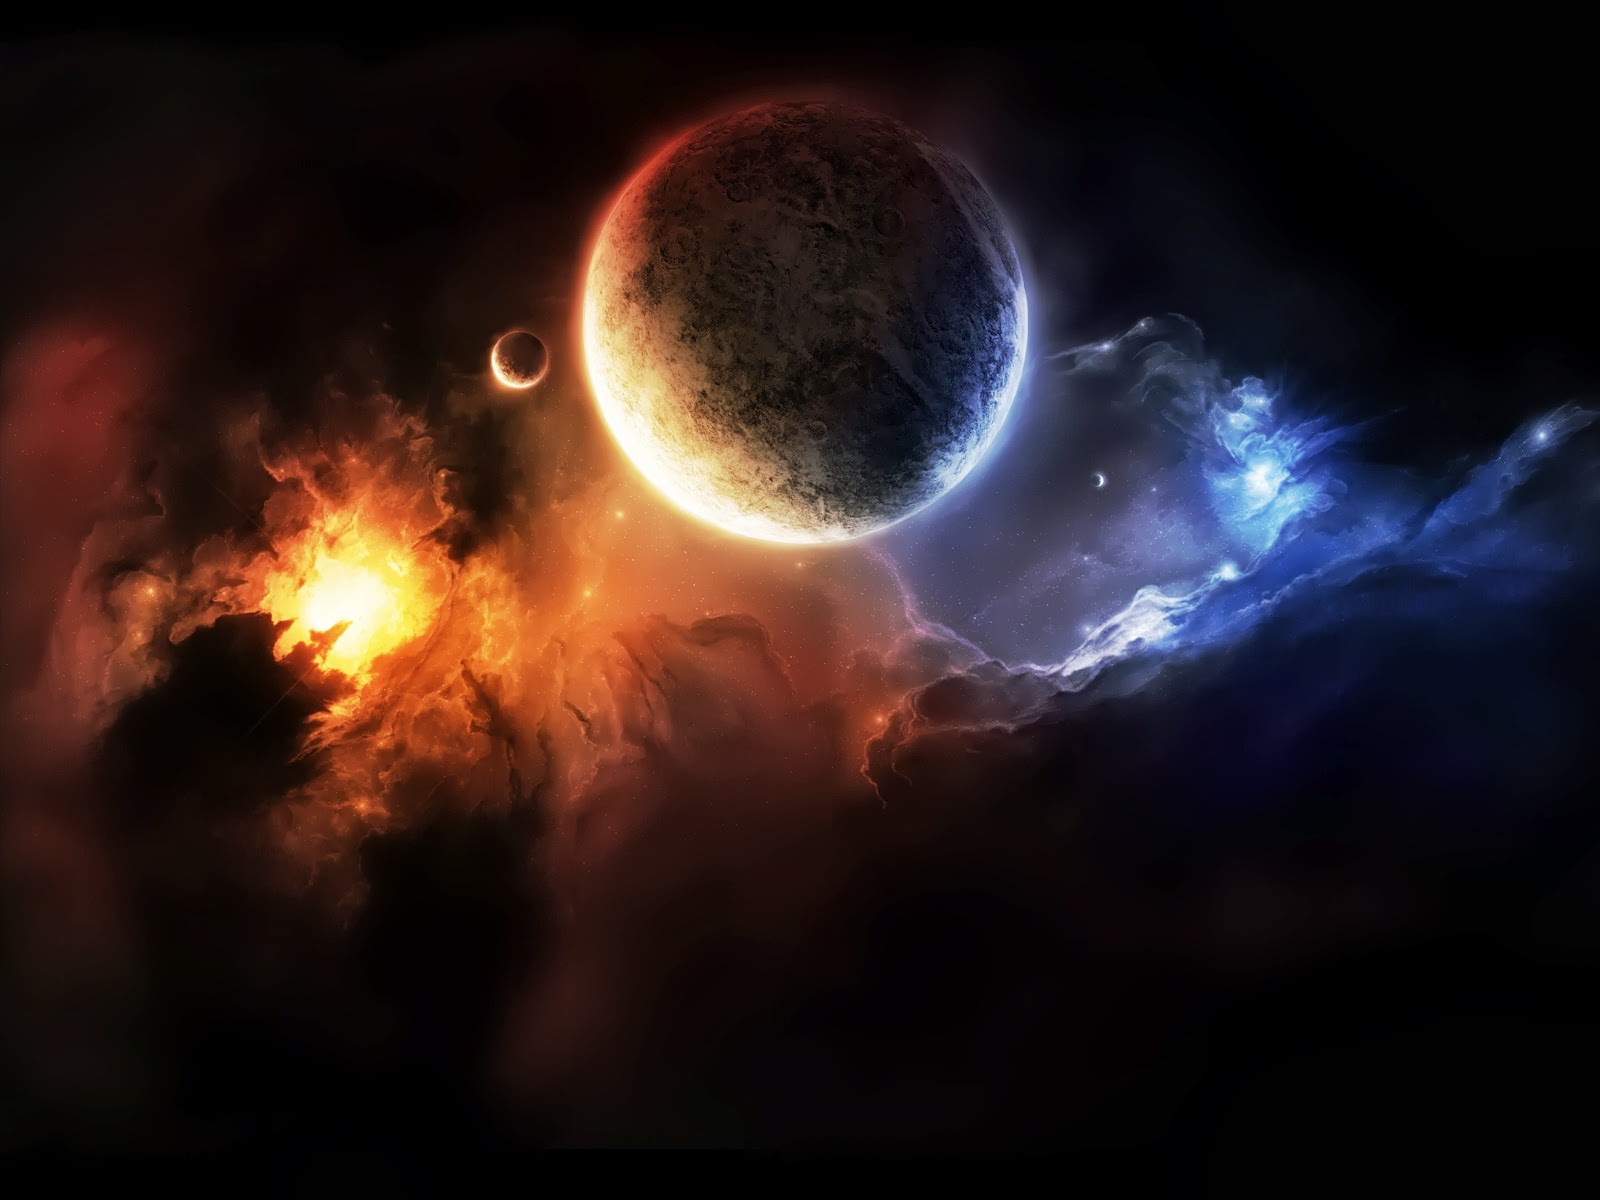 Http Space Wallpaper Blogspot Com 2013 06 Pictures Of Deep Space Html